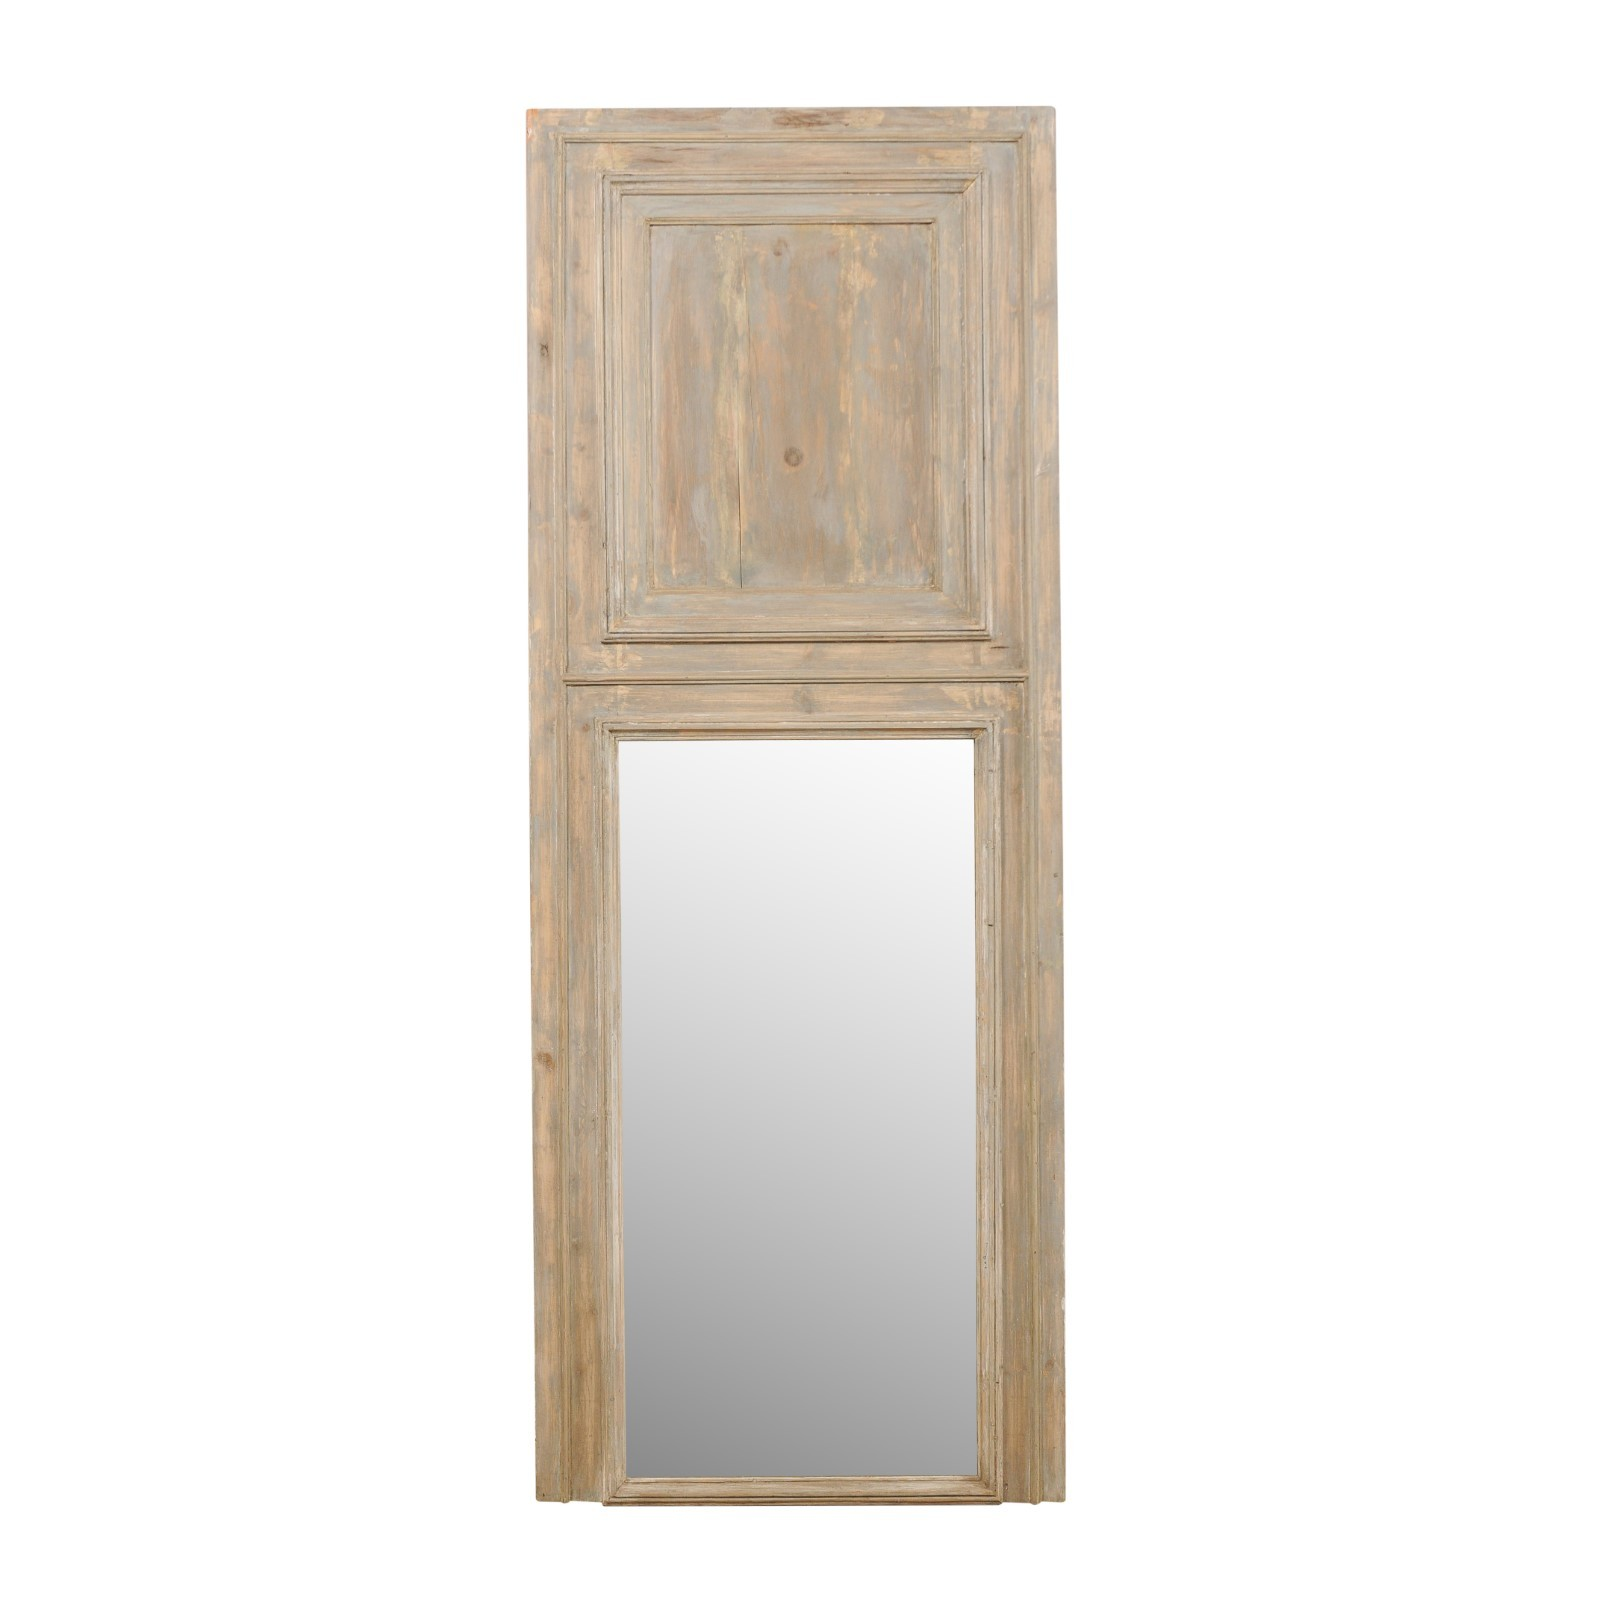 French 19th C. Trumeau Mirror, 8+ FT